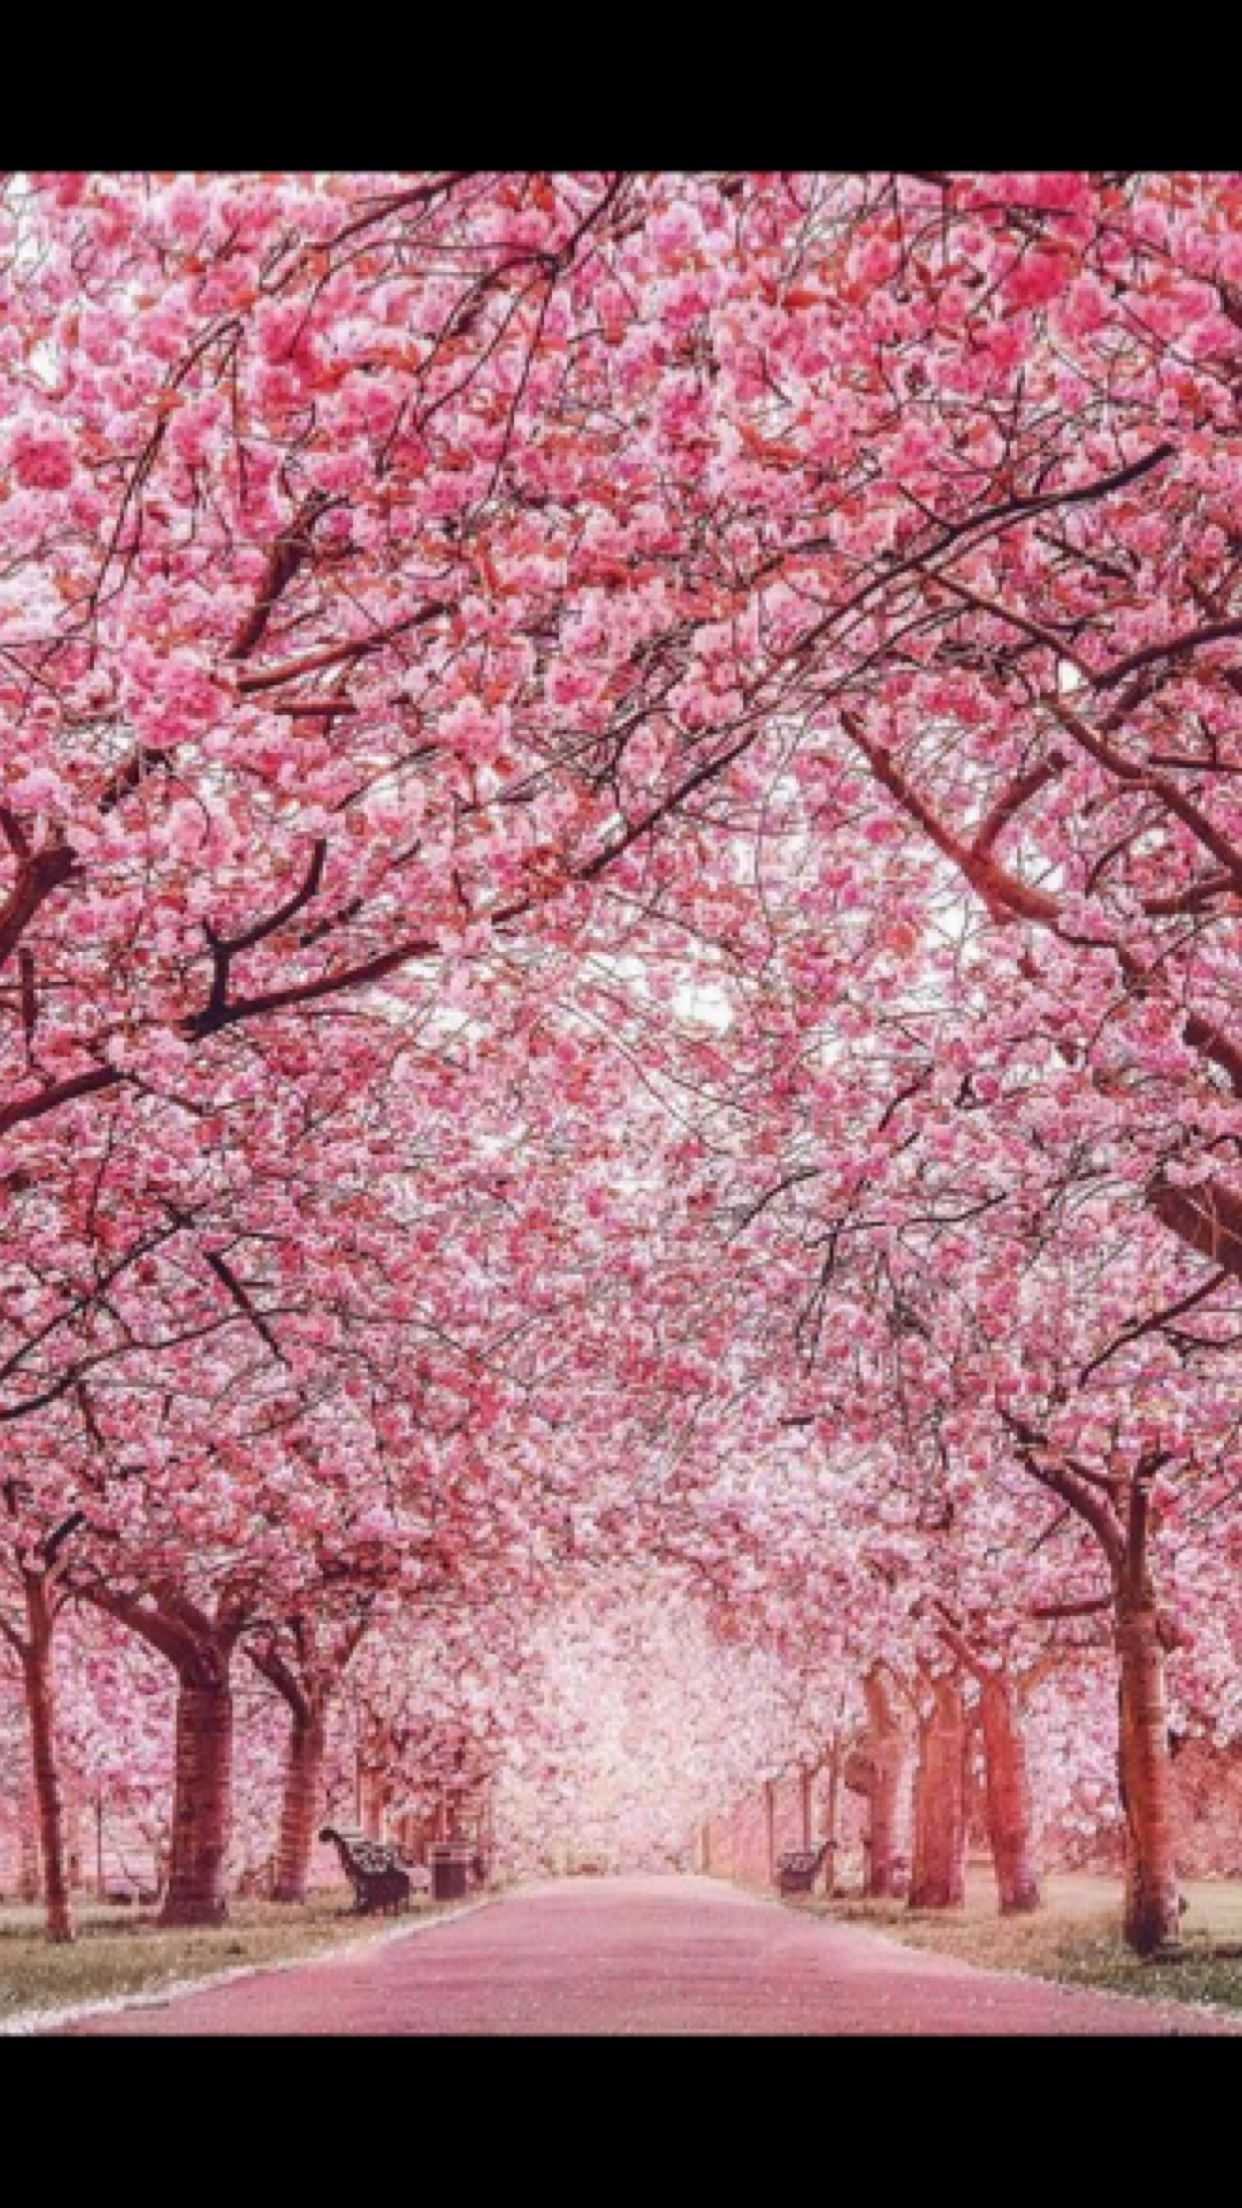 Such A Gorgeous Surrounding Pink Blossom Tree Nature Landscape